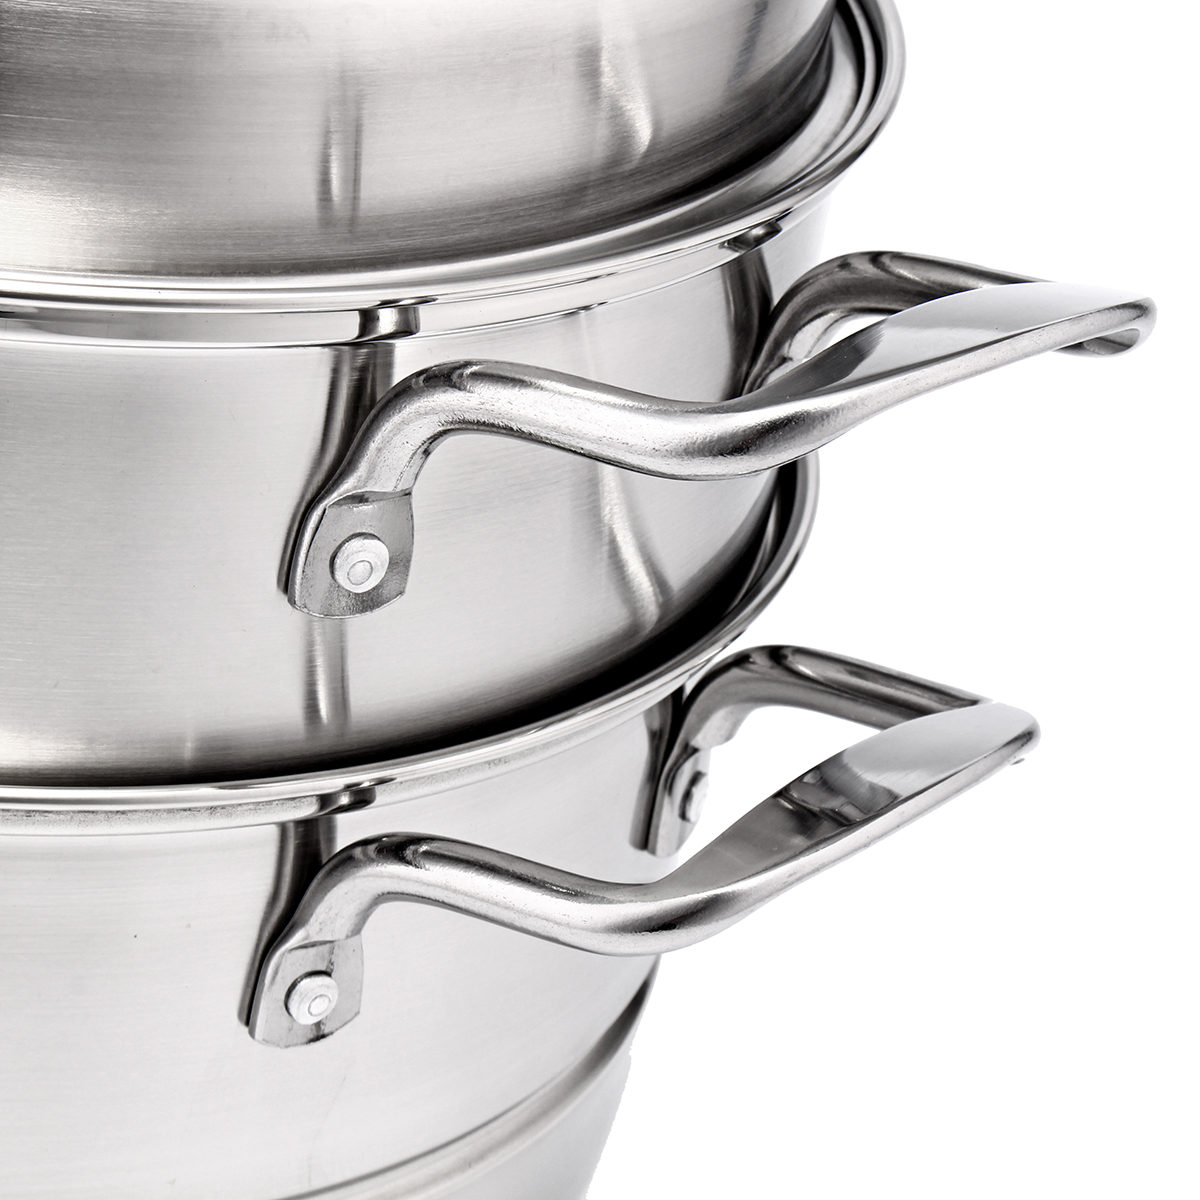 3 Tier Stainless Steel Steamer Thick Induction Pot Kitchen Cookware 5 Size